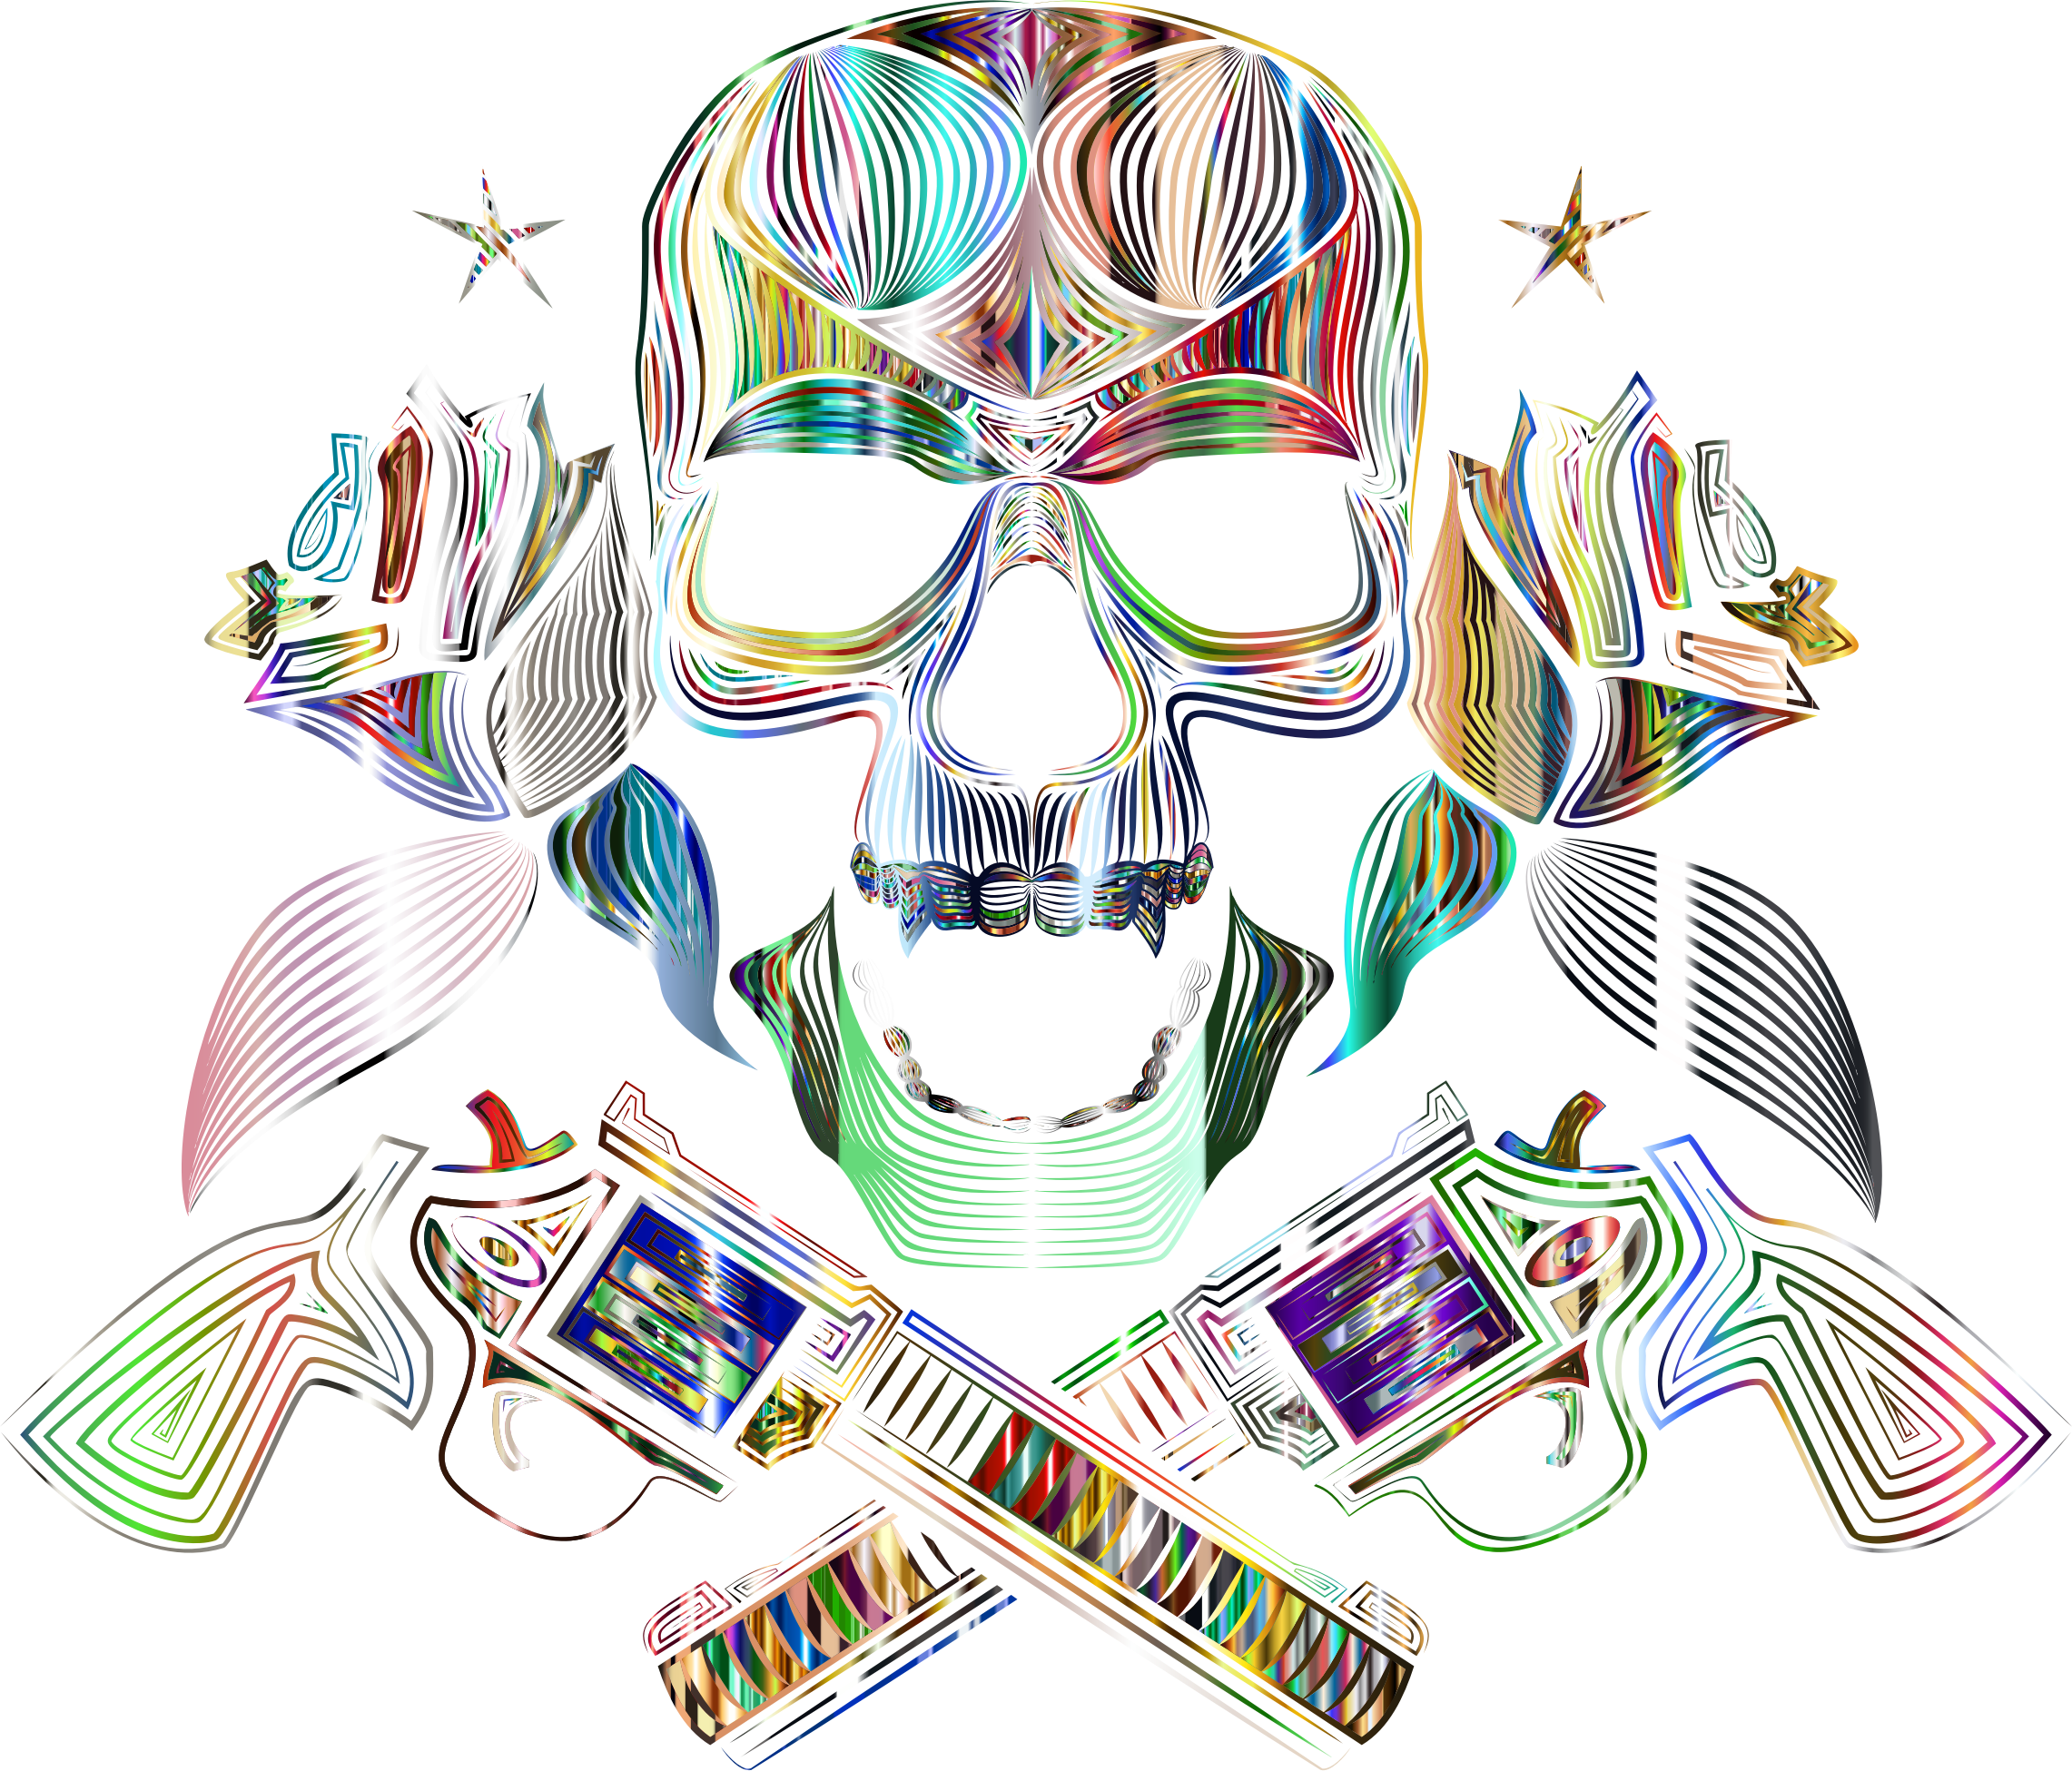 Flowers And Firearms Skull Line Art Psychedelic No BG by GDJ